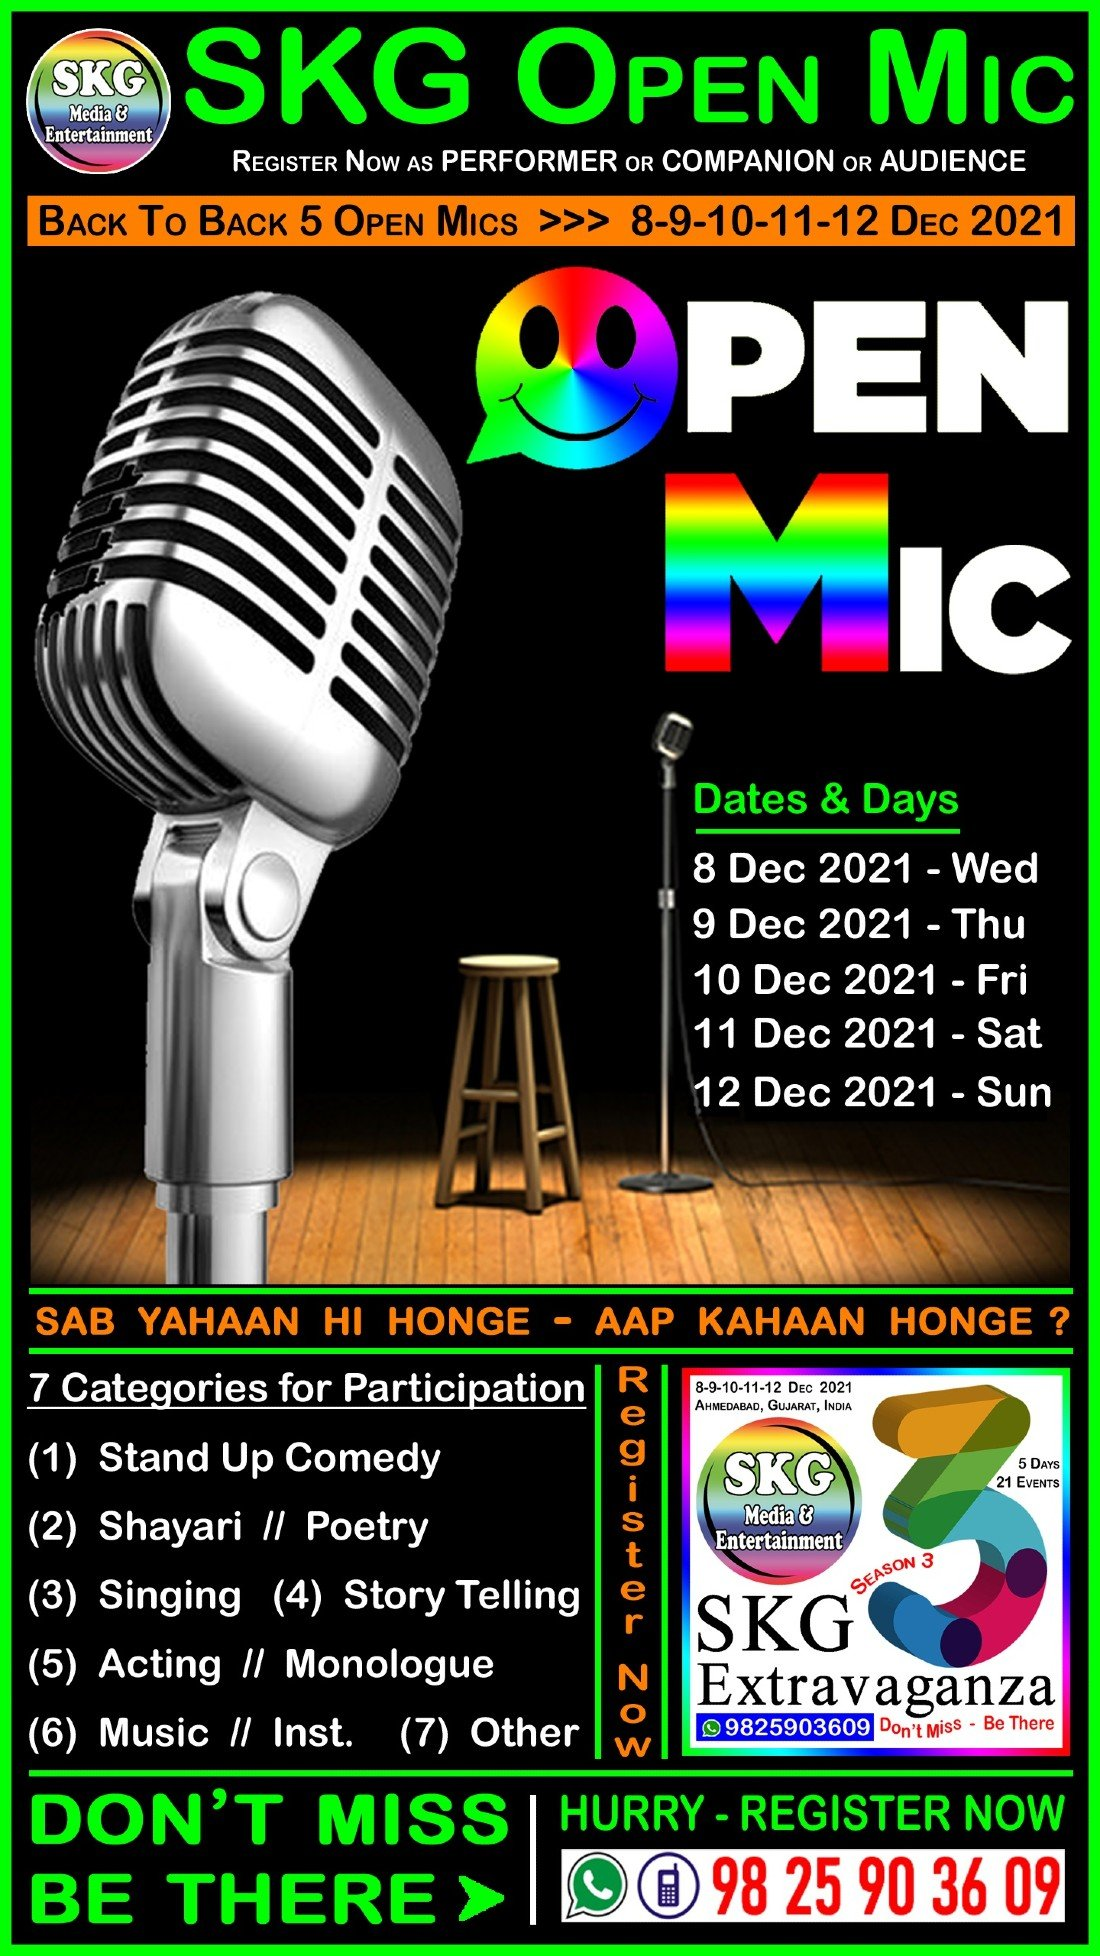 SKG Open Mic - Back to Back 5 Open Mics (( Event No 4 of 21 - SKG Extravaganza Season 3 )), 8 December | AllEvents.in